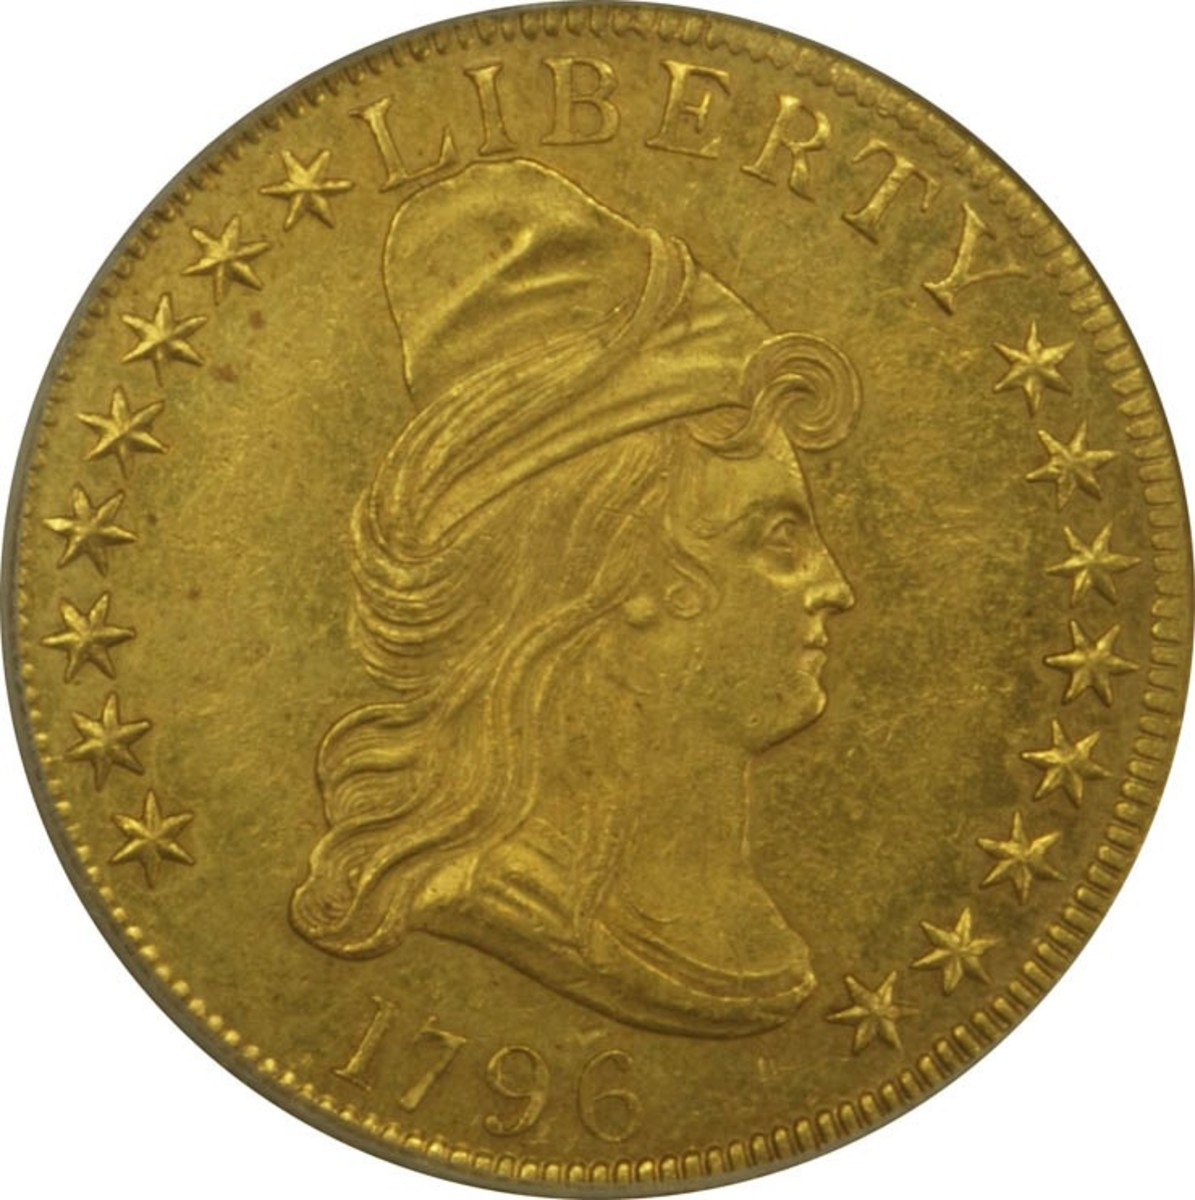 1796 $10 Gold Eagle struck by the United States Mint.